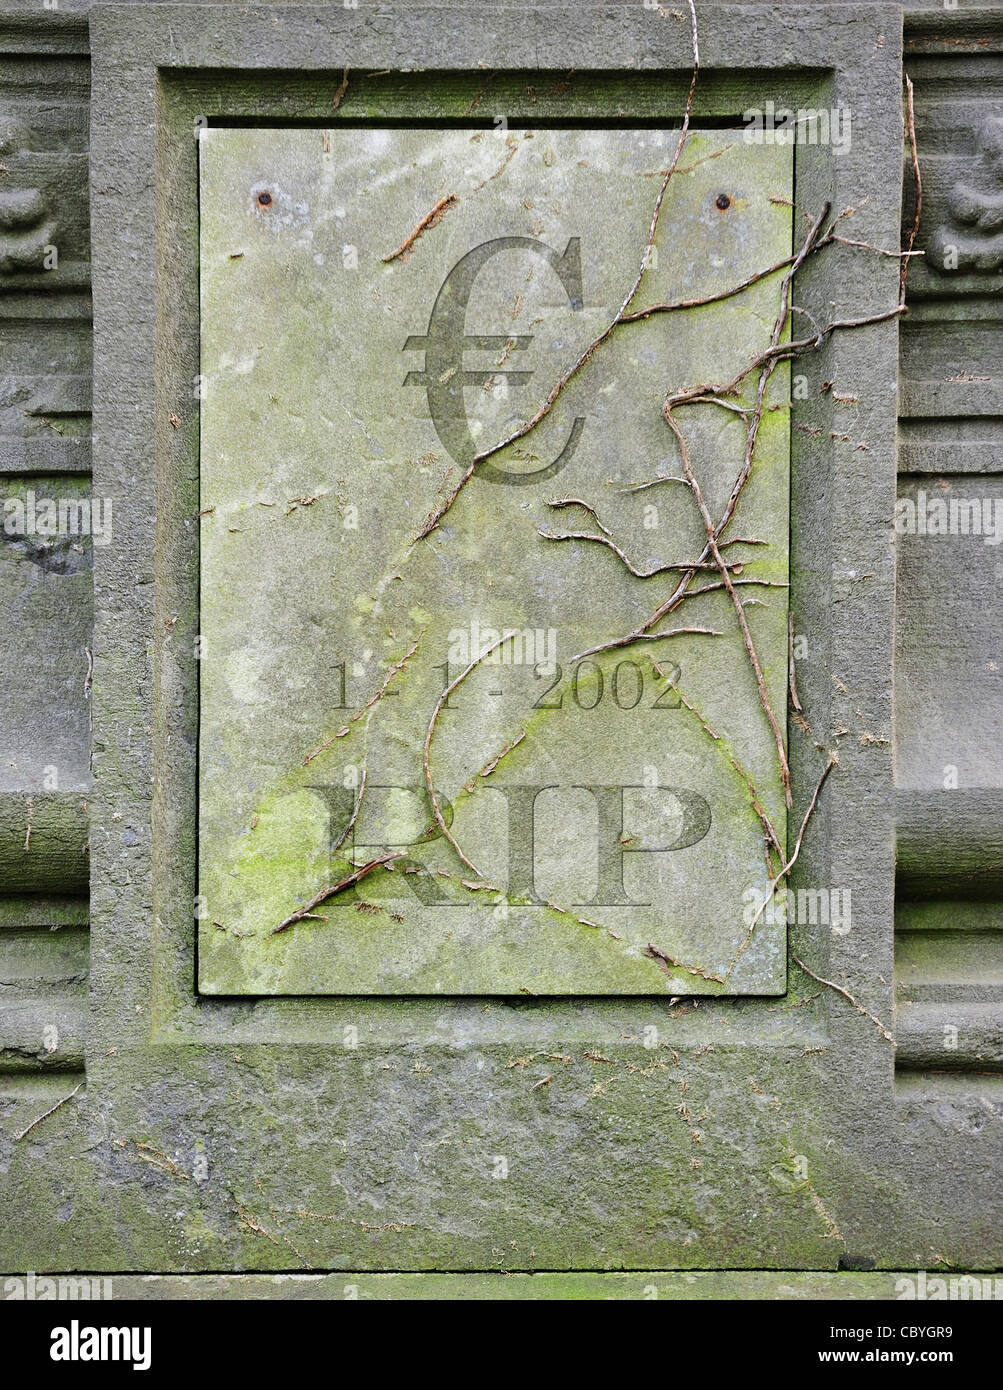 Conceptual grave with € and RIP engraved for symbolic death of European euro due to financial crisis and bank debt - Stock Image